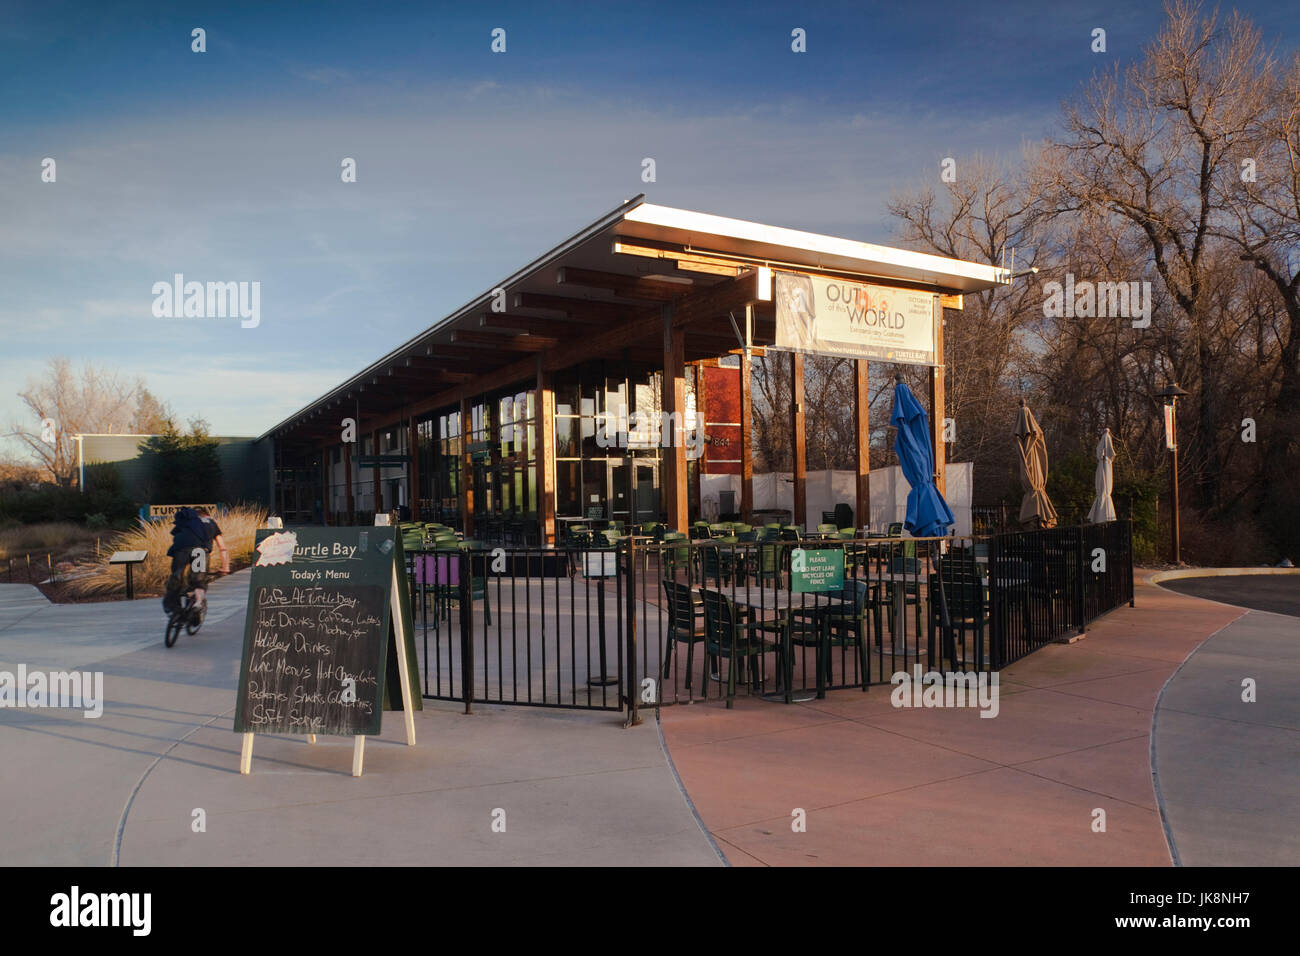 USA, California, Northern California, Northern Mountains, Redding, Turtle Bay Park cafe - Stock Image